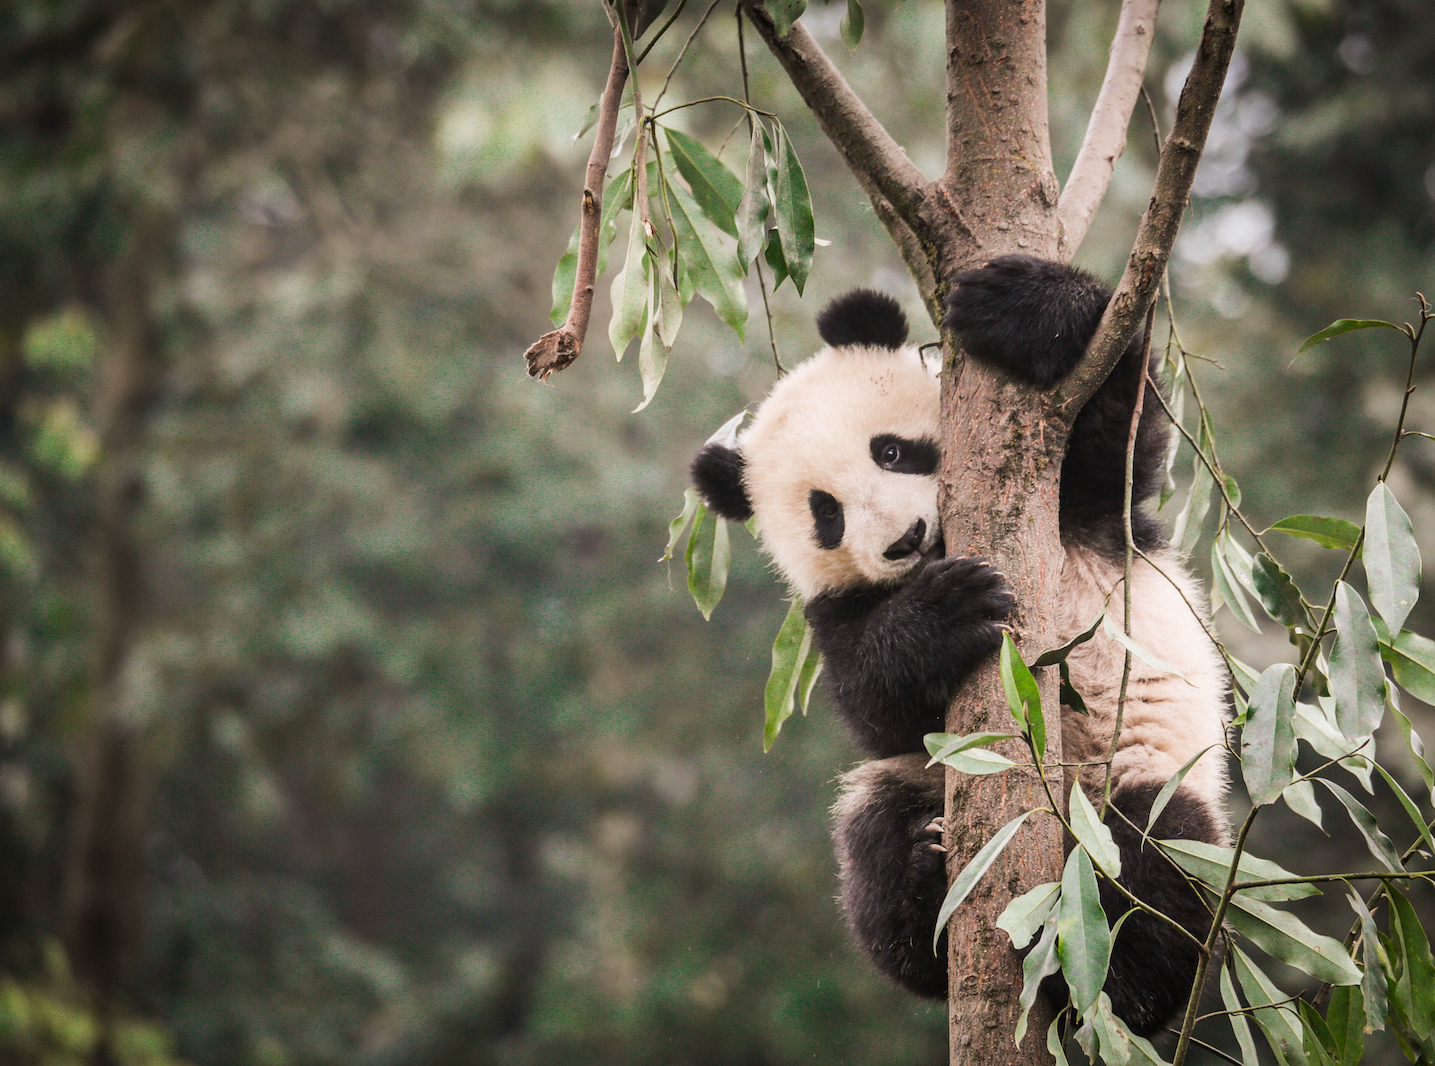 A new study has found that panda habitats cover less area and are more fragmented than when they were first listed as an endangered species.